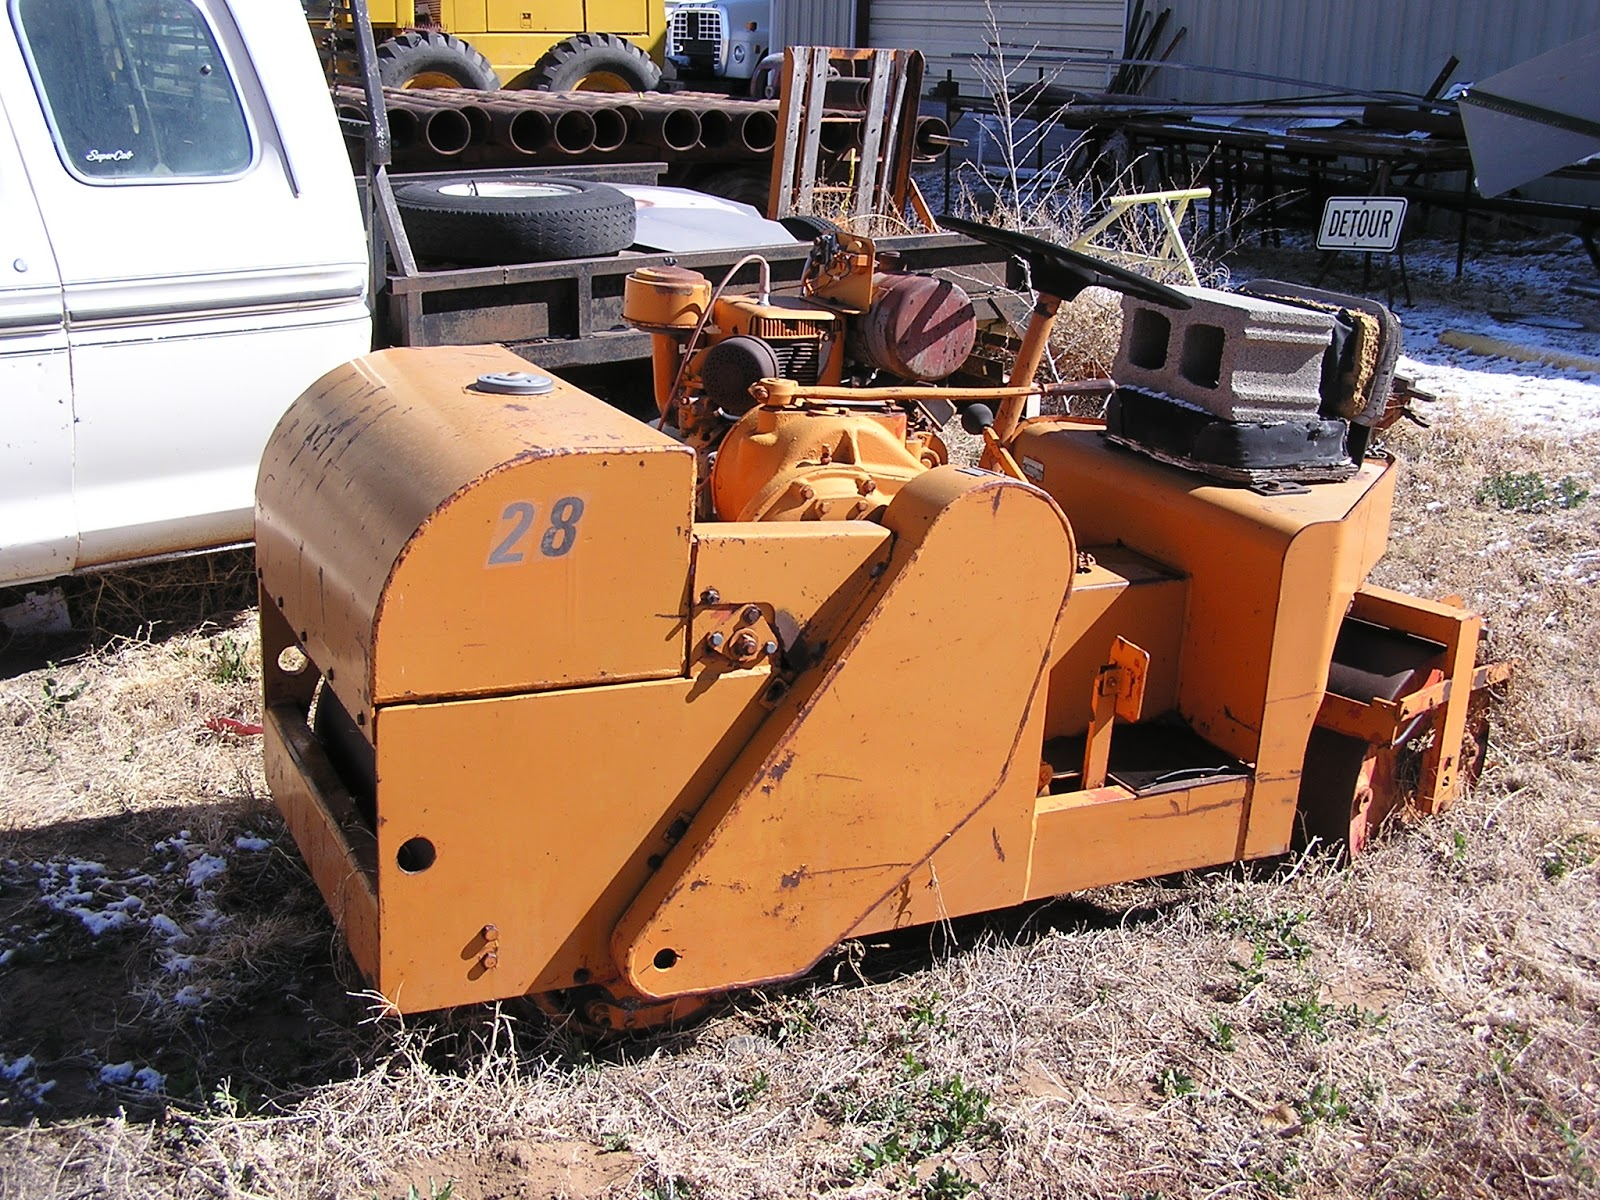 Essick vr30re vibratory roller pictures of my roller from 2011 - Essecke roller ...